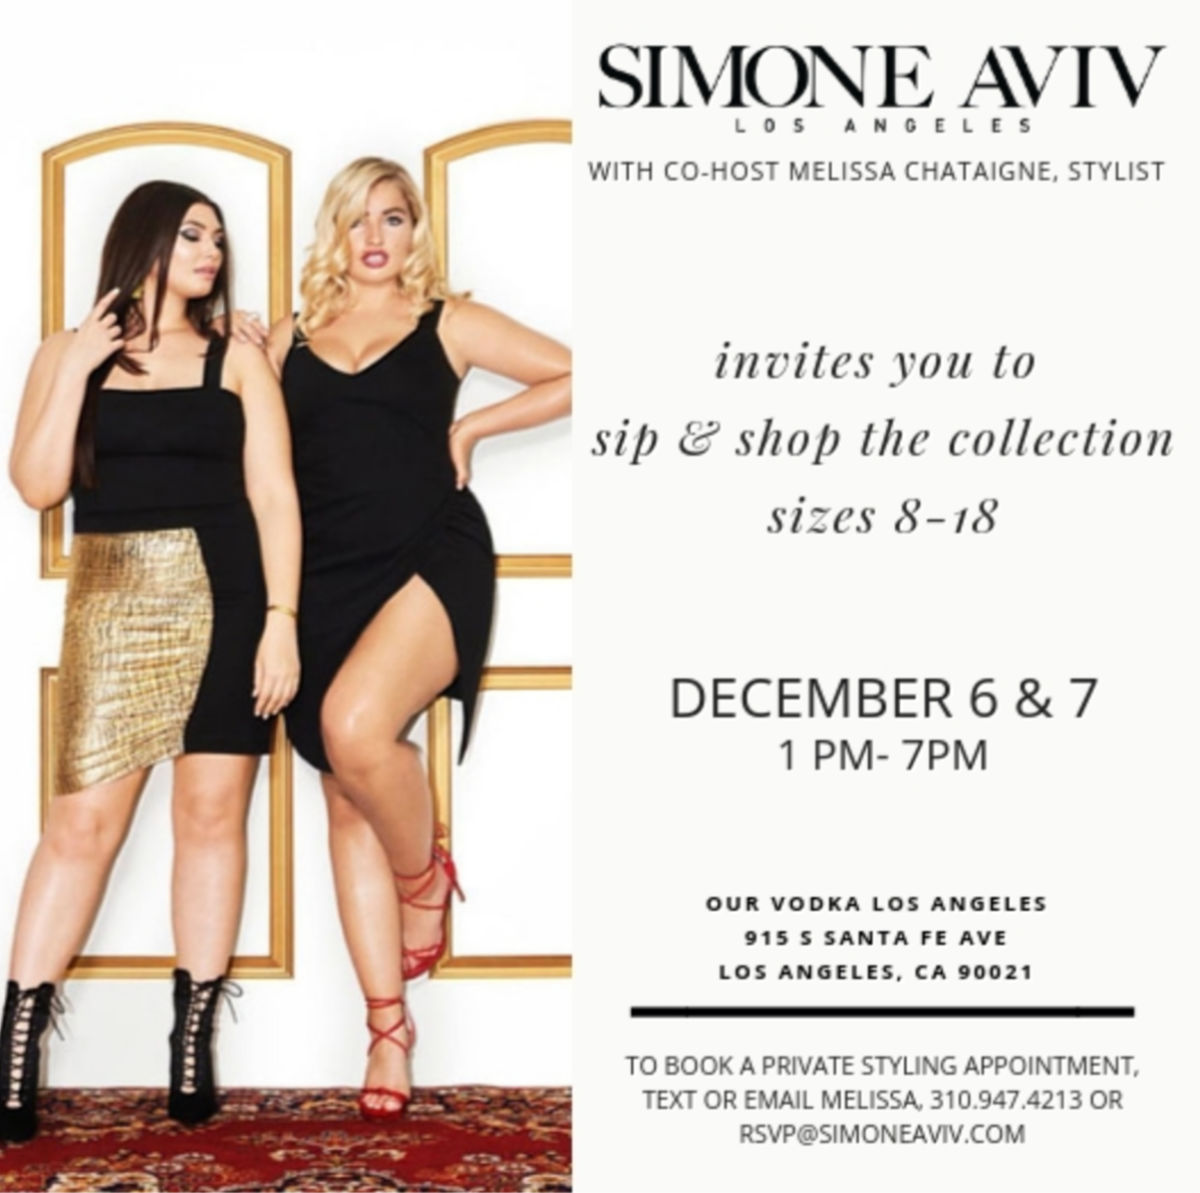 Simone Aviv Pop Up Shop